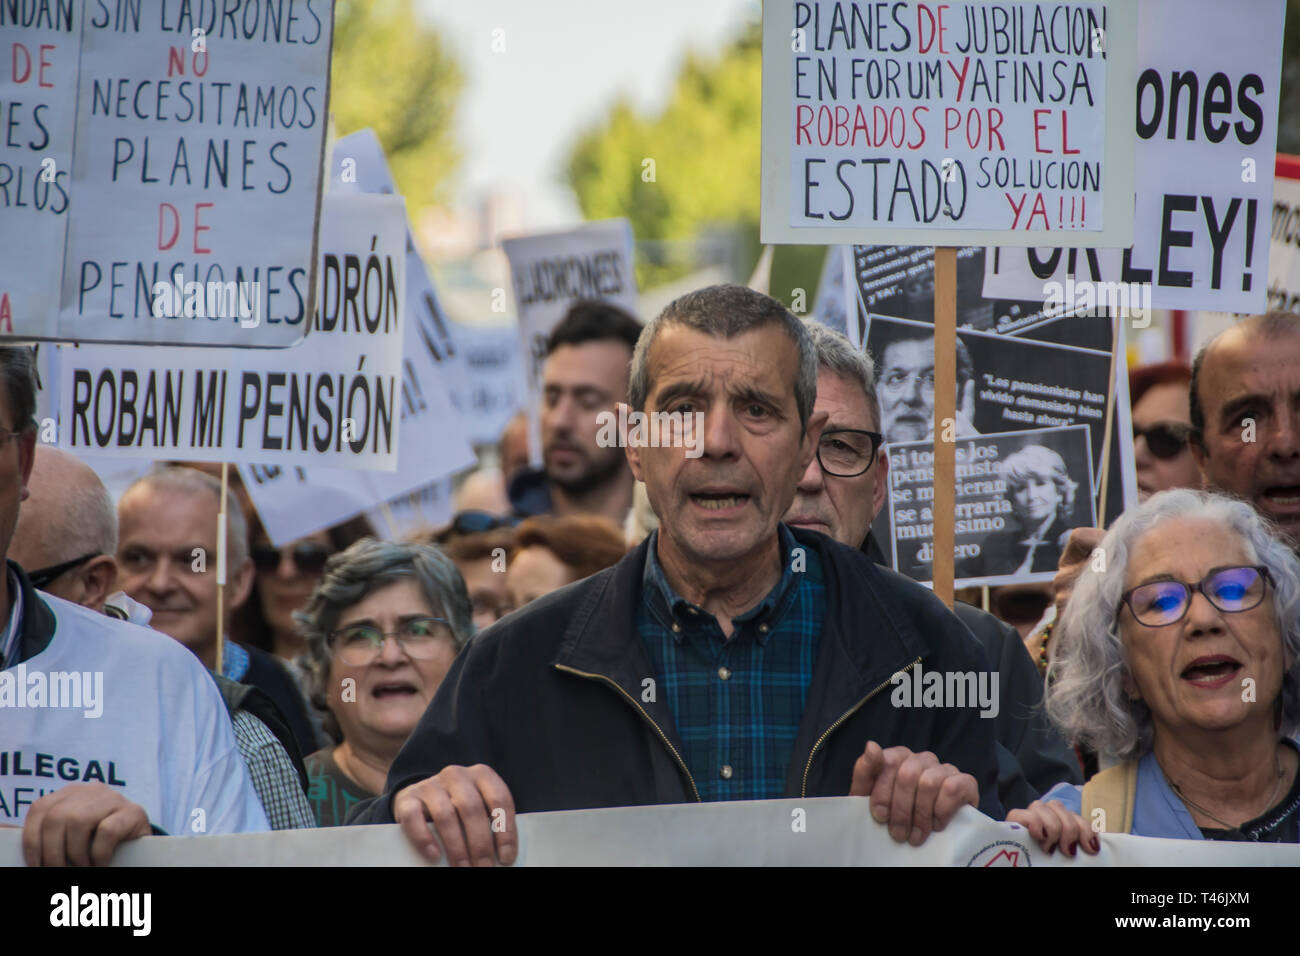 Protesters are seen holding placards while chanting slogans during the demonstration. Demonstration to defend the systemic public pension in Madrid by the CCOO coordination of pensioners that calls on the Government to ensure the presentation in this term of an initiative to repeal the pension reform of 2013, which must be legally validated in the face of elections this month of April 2019, within the framework of broad agreements in the political and social sphere. This initiative is a prior agreement of the social partners (trade unions and employers), culminating the process of consultation Stock Photo